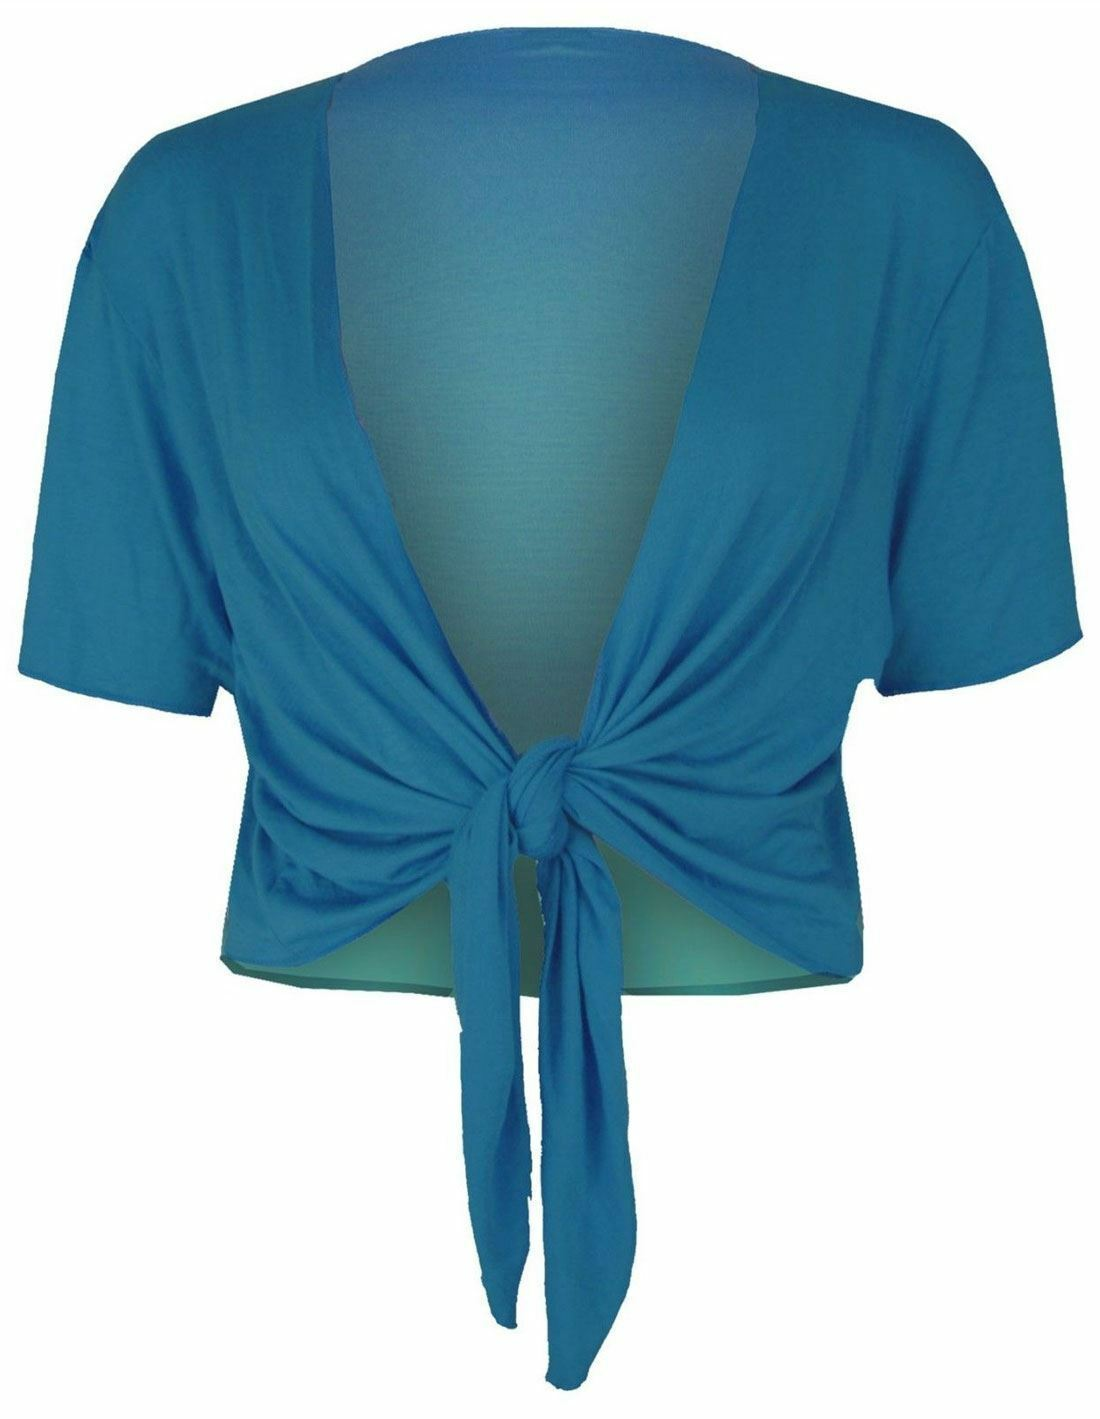 Womens Plain Tie Up Front Shrug Top Ladies Short Sleeve Party Wear Cropped Top